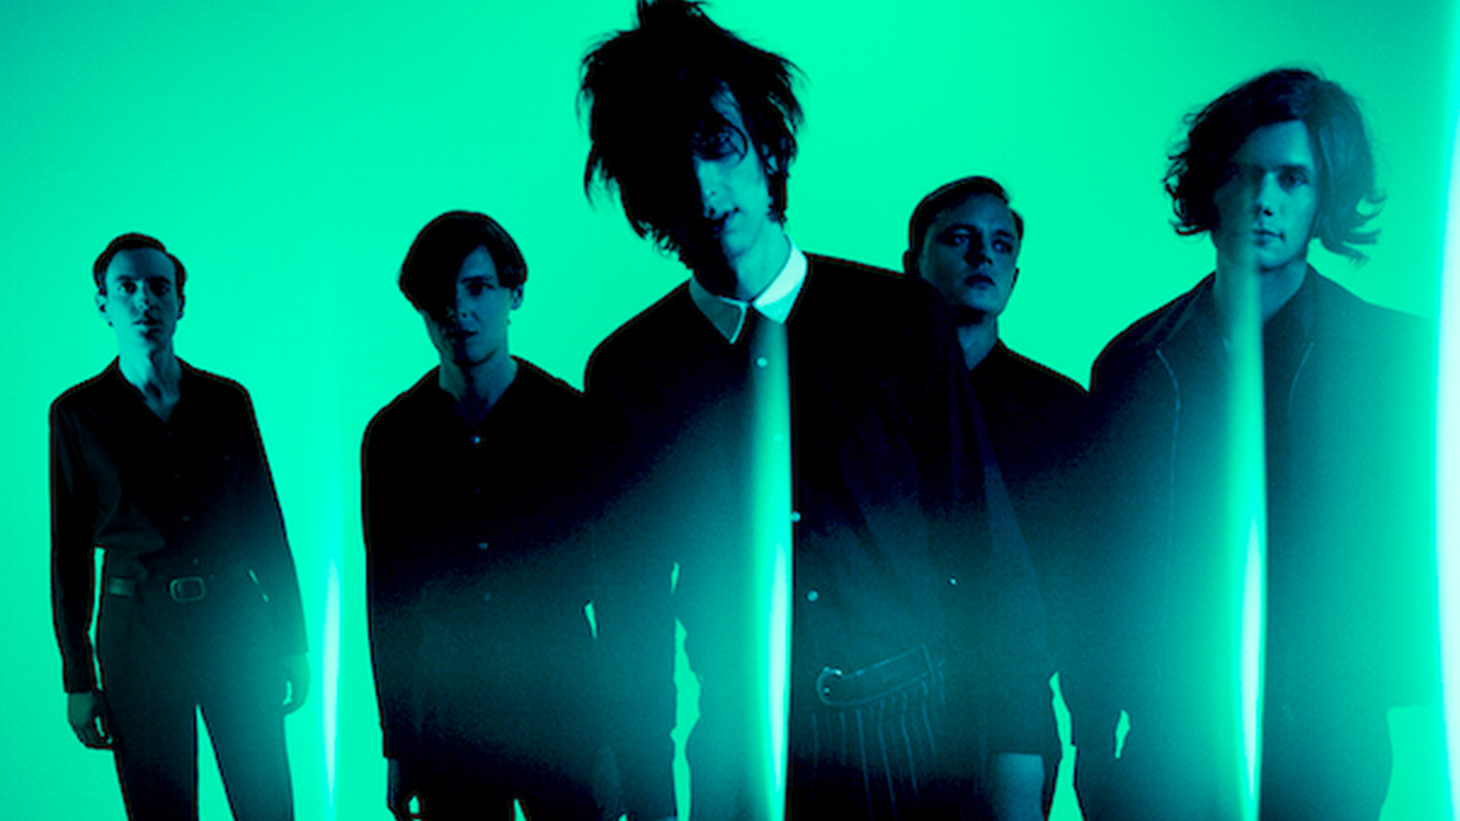 """Moody rockers The Horrors brought in blockbuster producer Paul Epworth to help craft their 5th album """"V"""". They finish up a US tour here in our studio before heading back to the UK."""